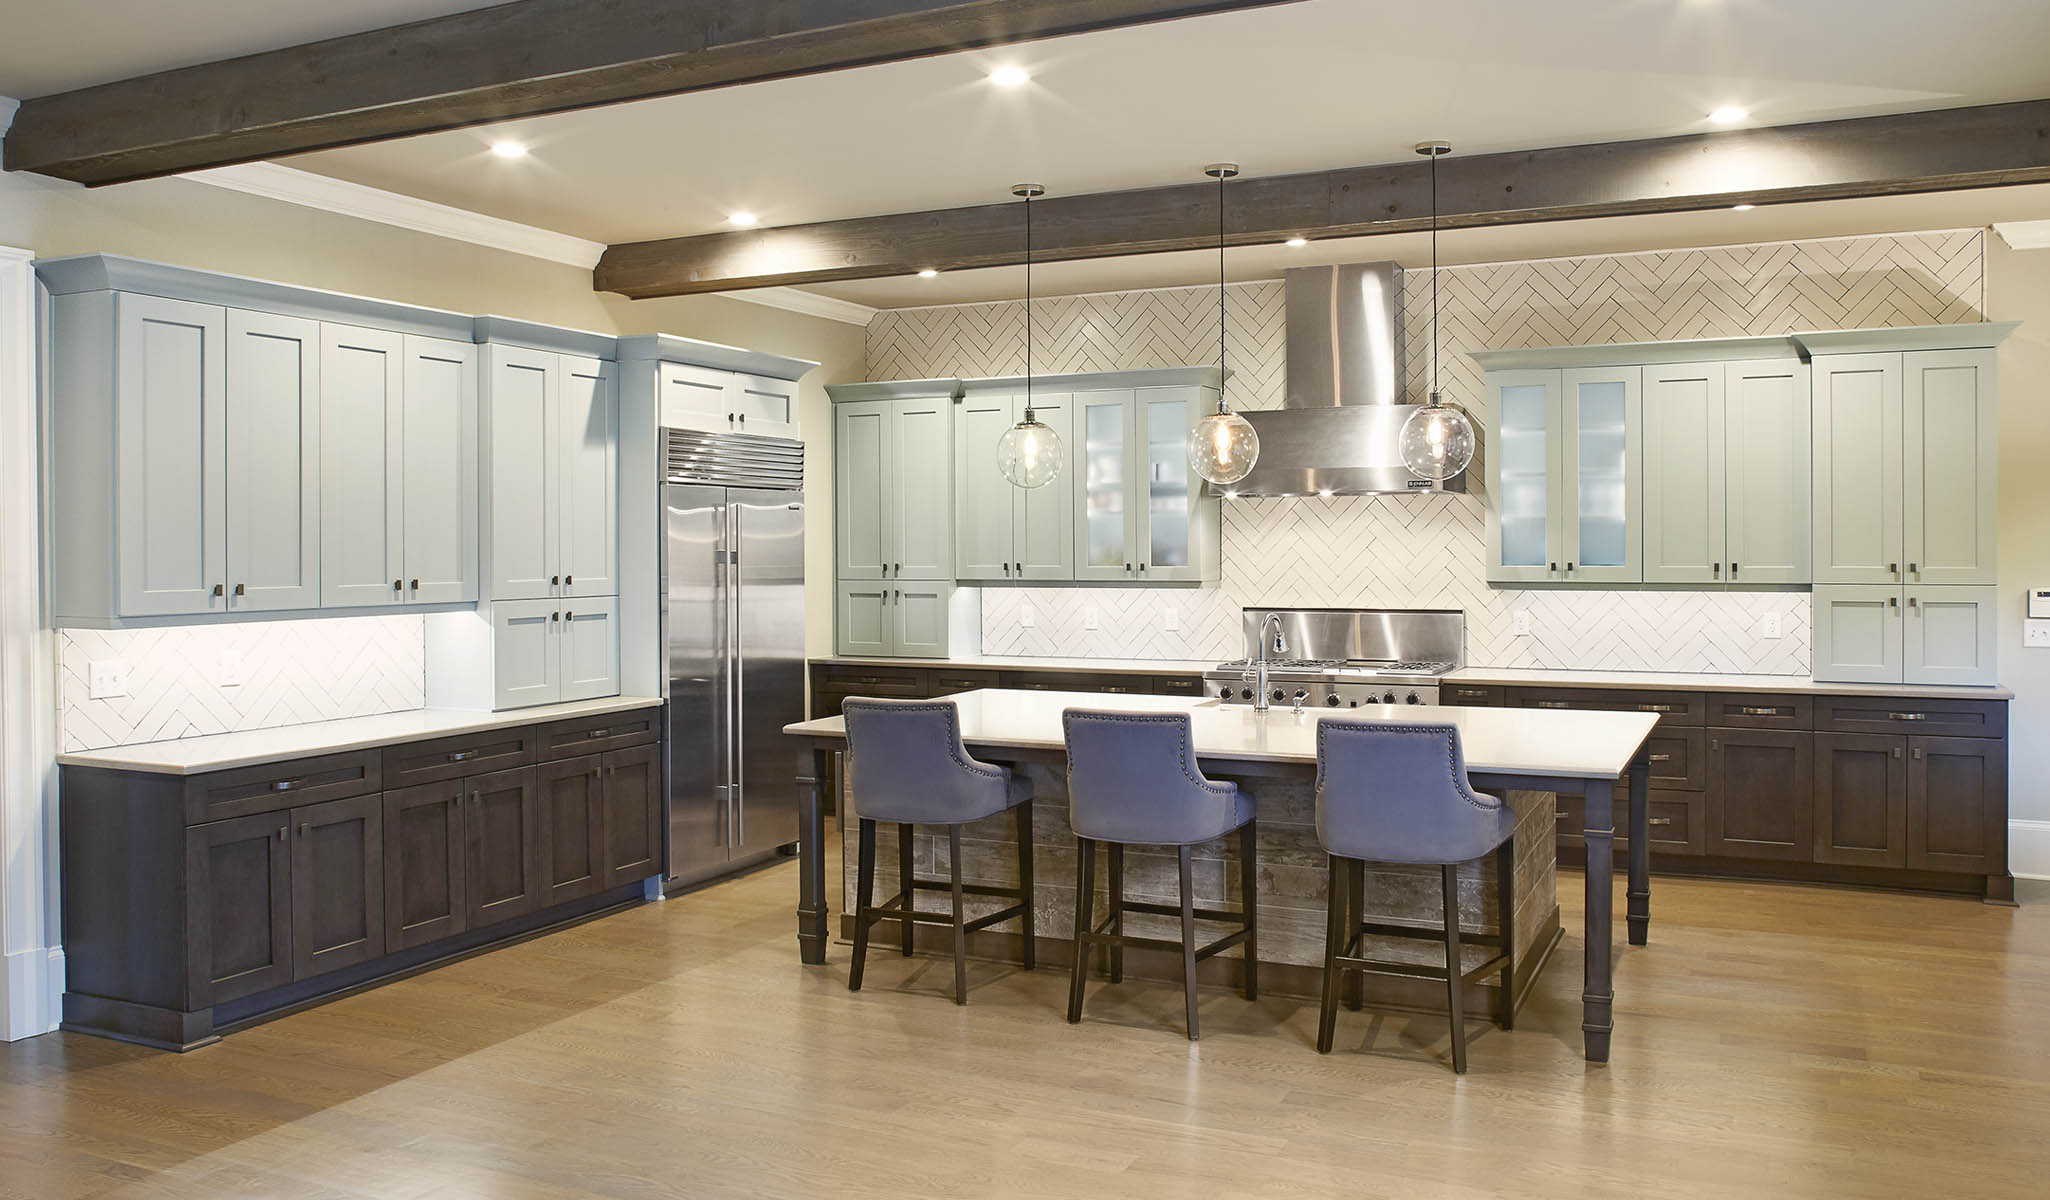 Kitchen Cabinets Pictures Gallery Kith Kitchens Custom Cabinets Cabinet Construction